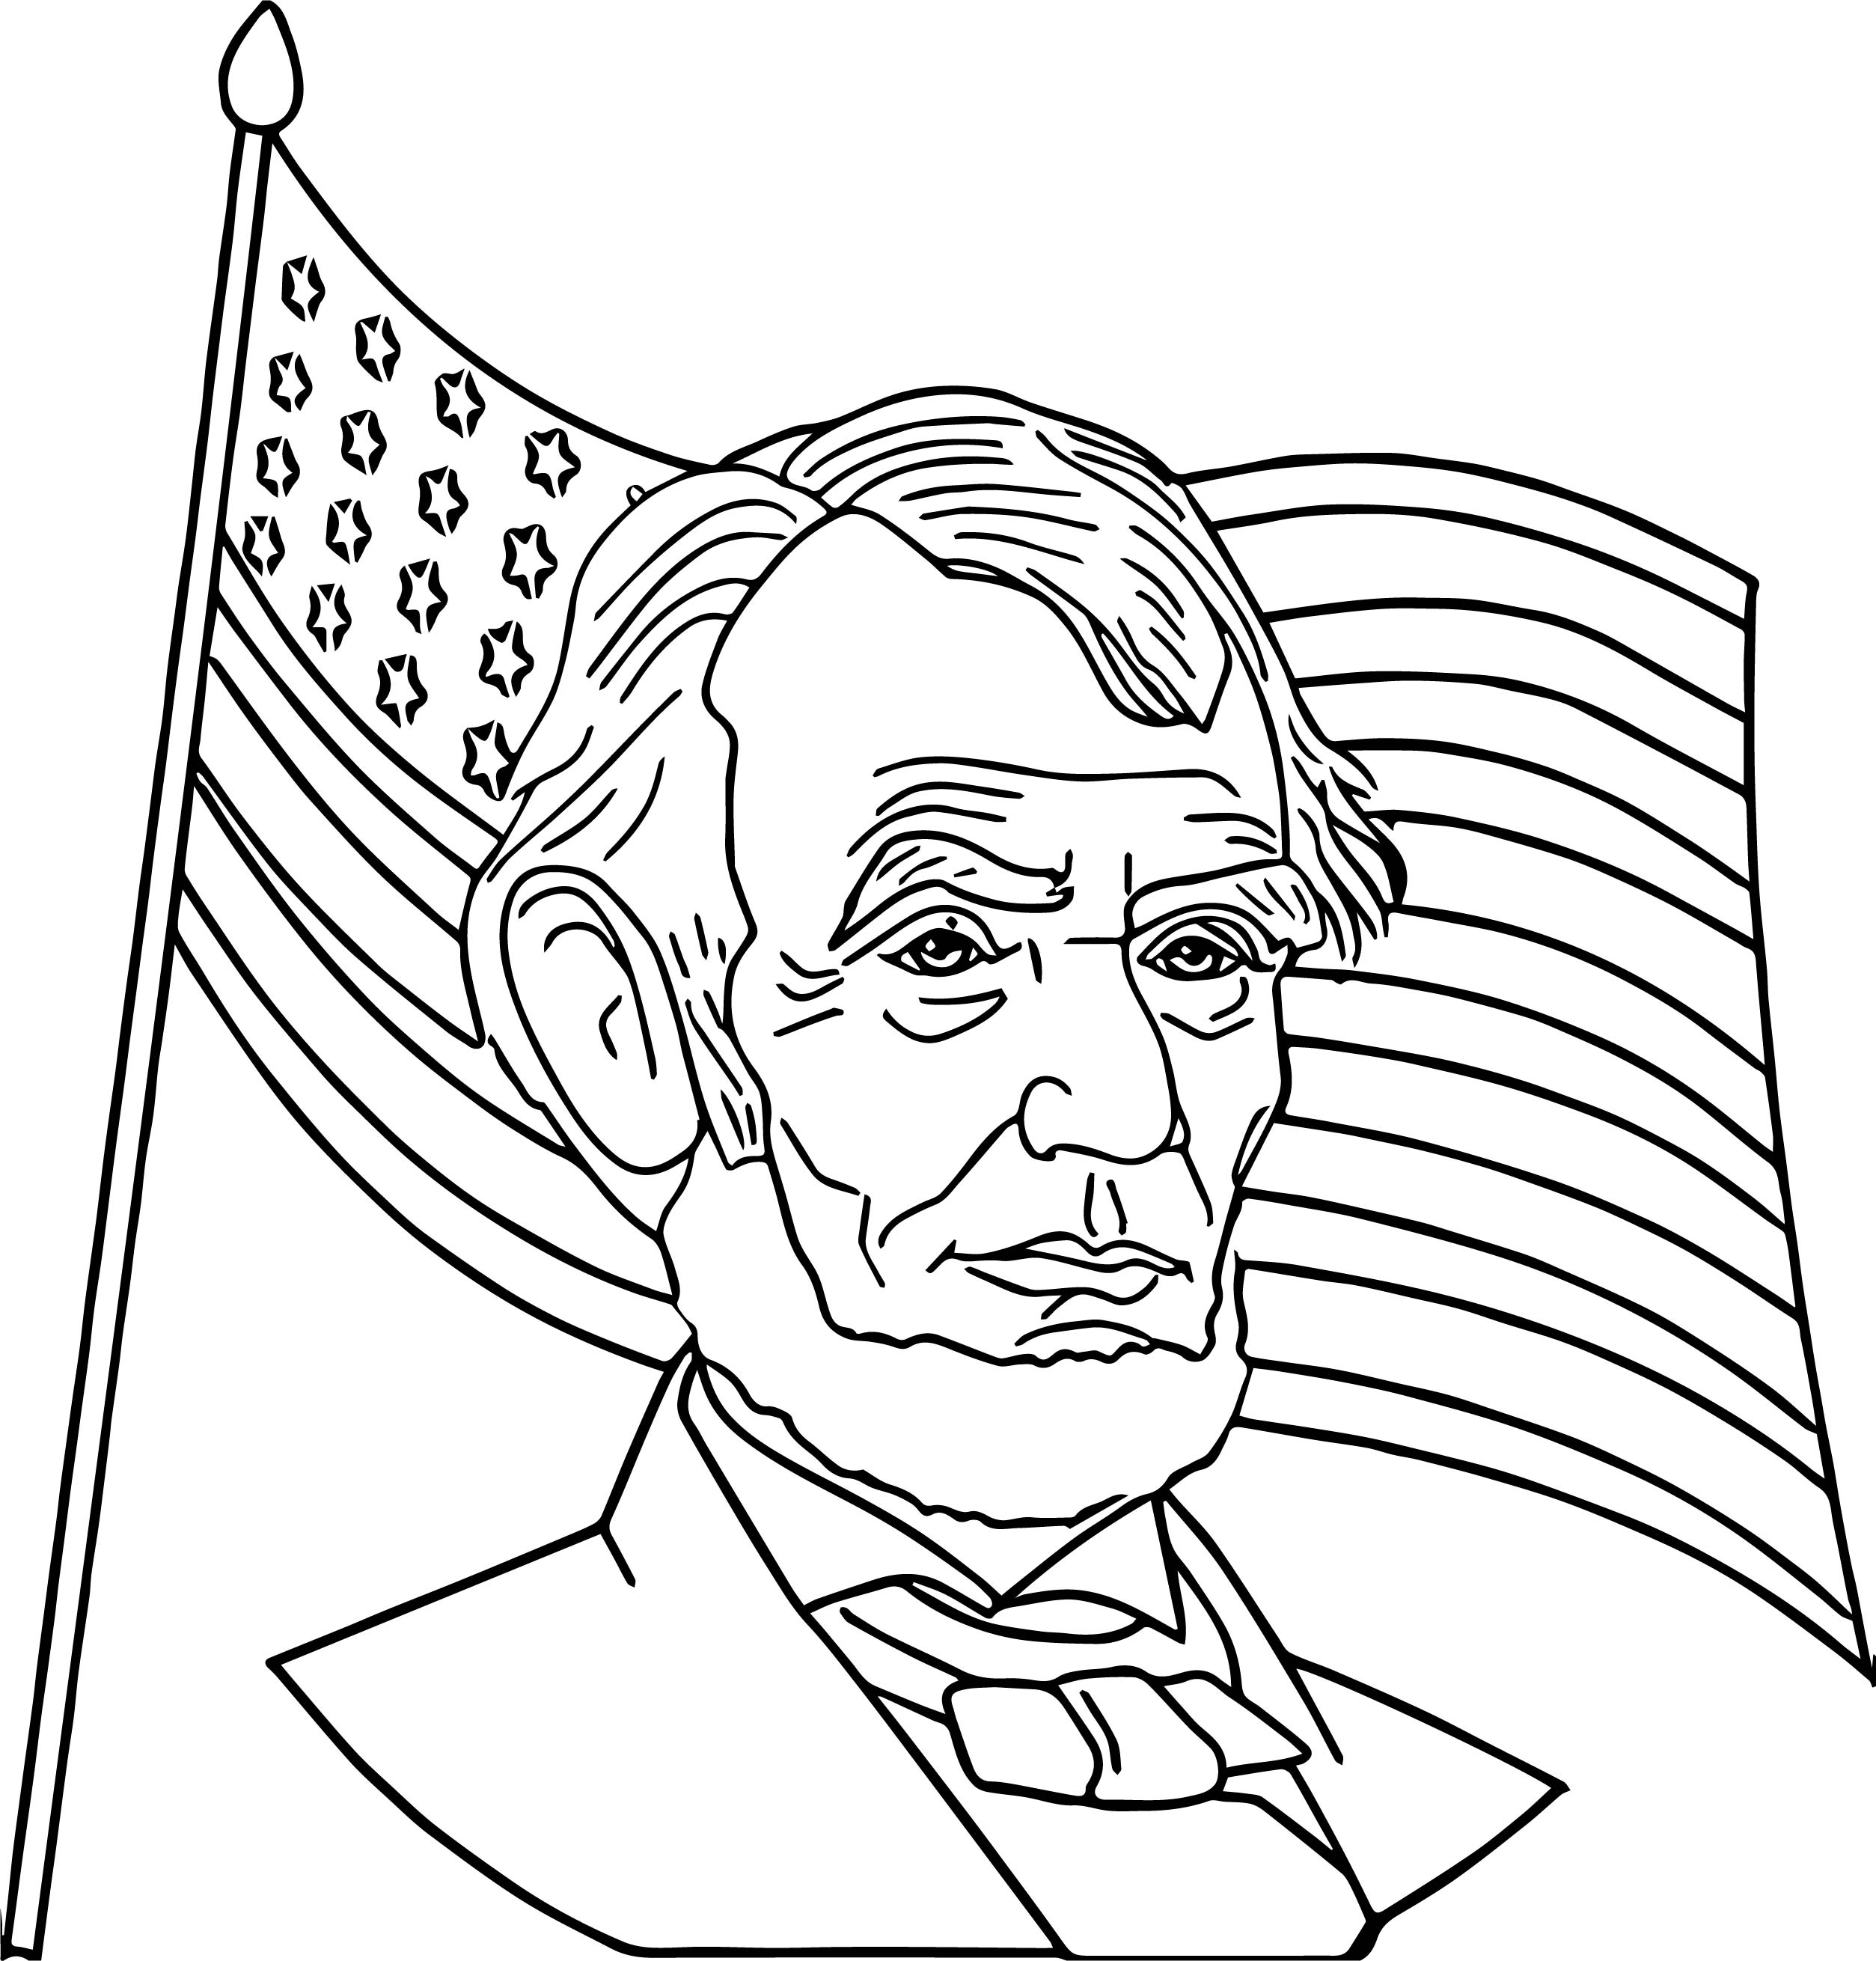 Abraham Lincoln President America Coloring Page Wecoloringpage